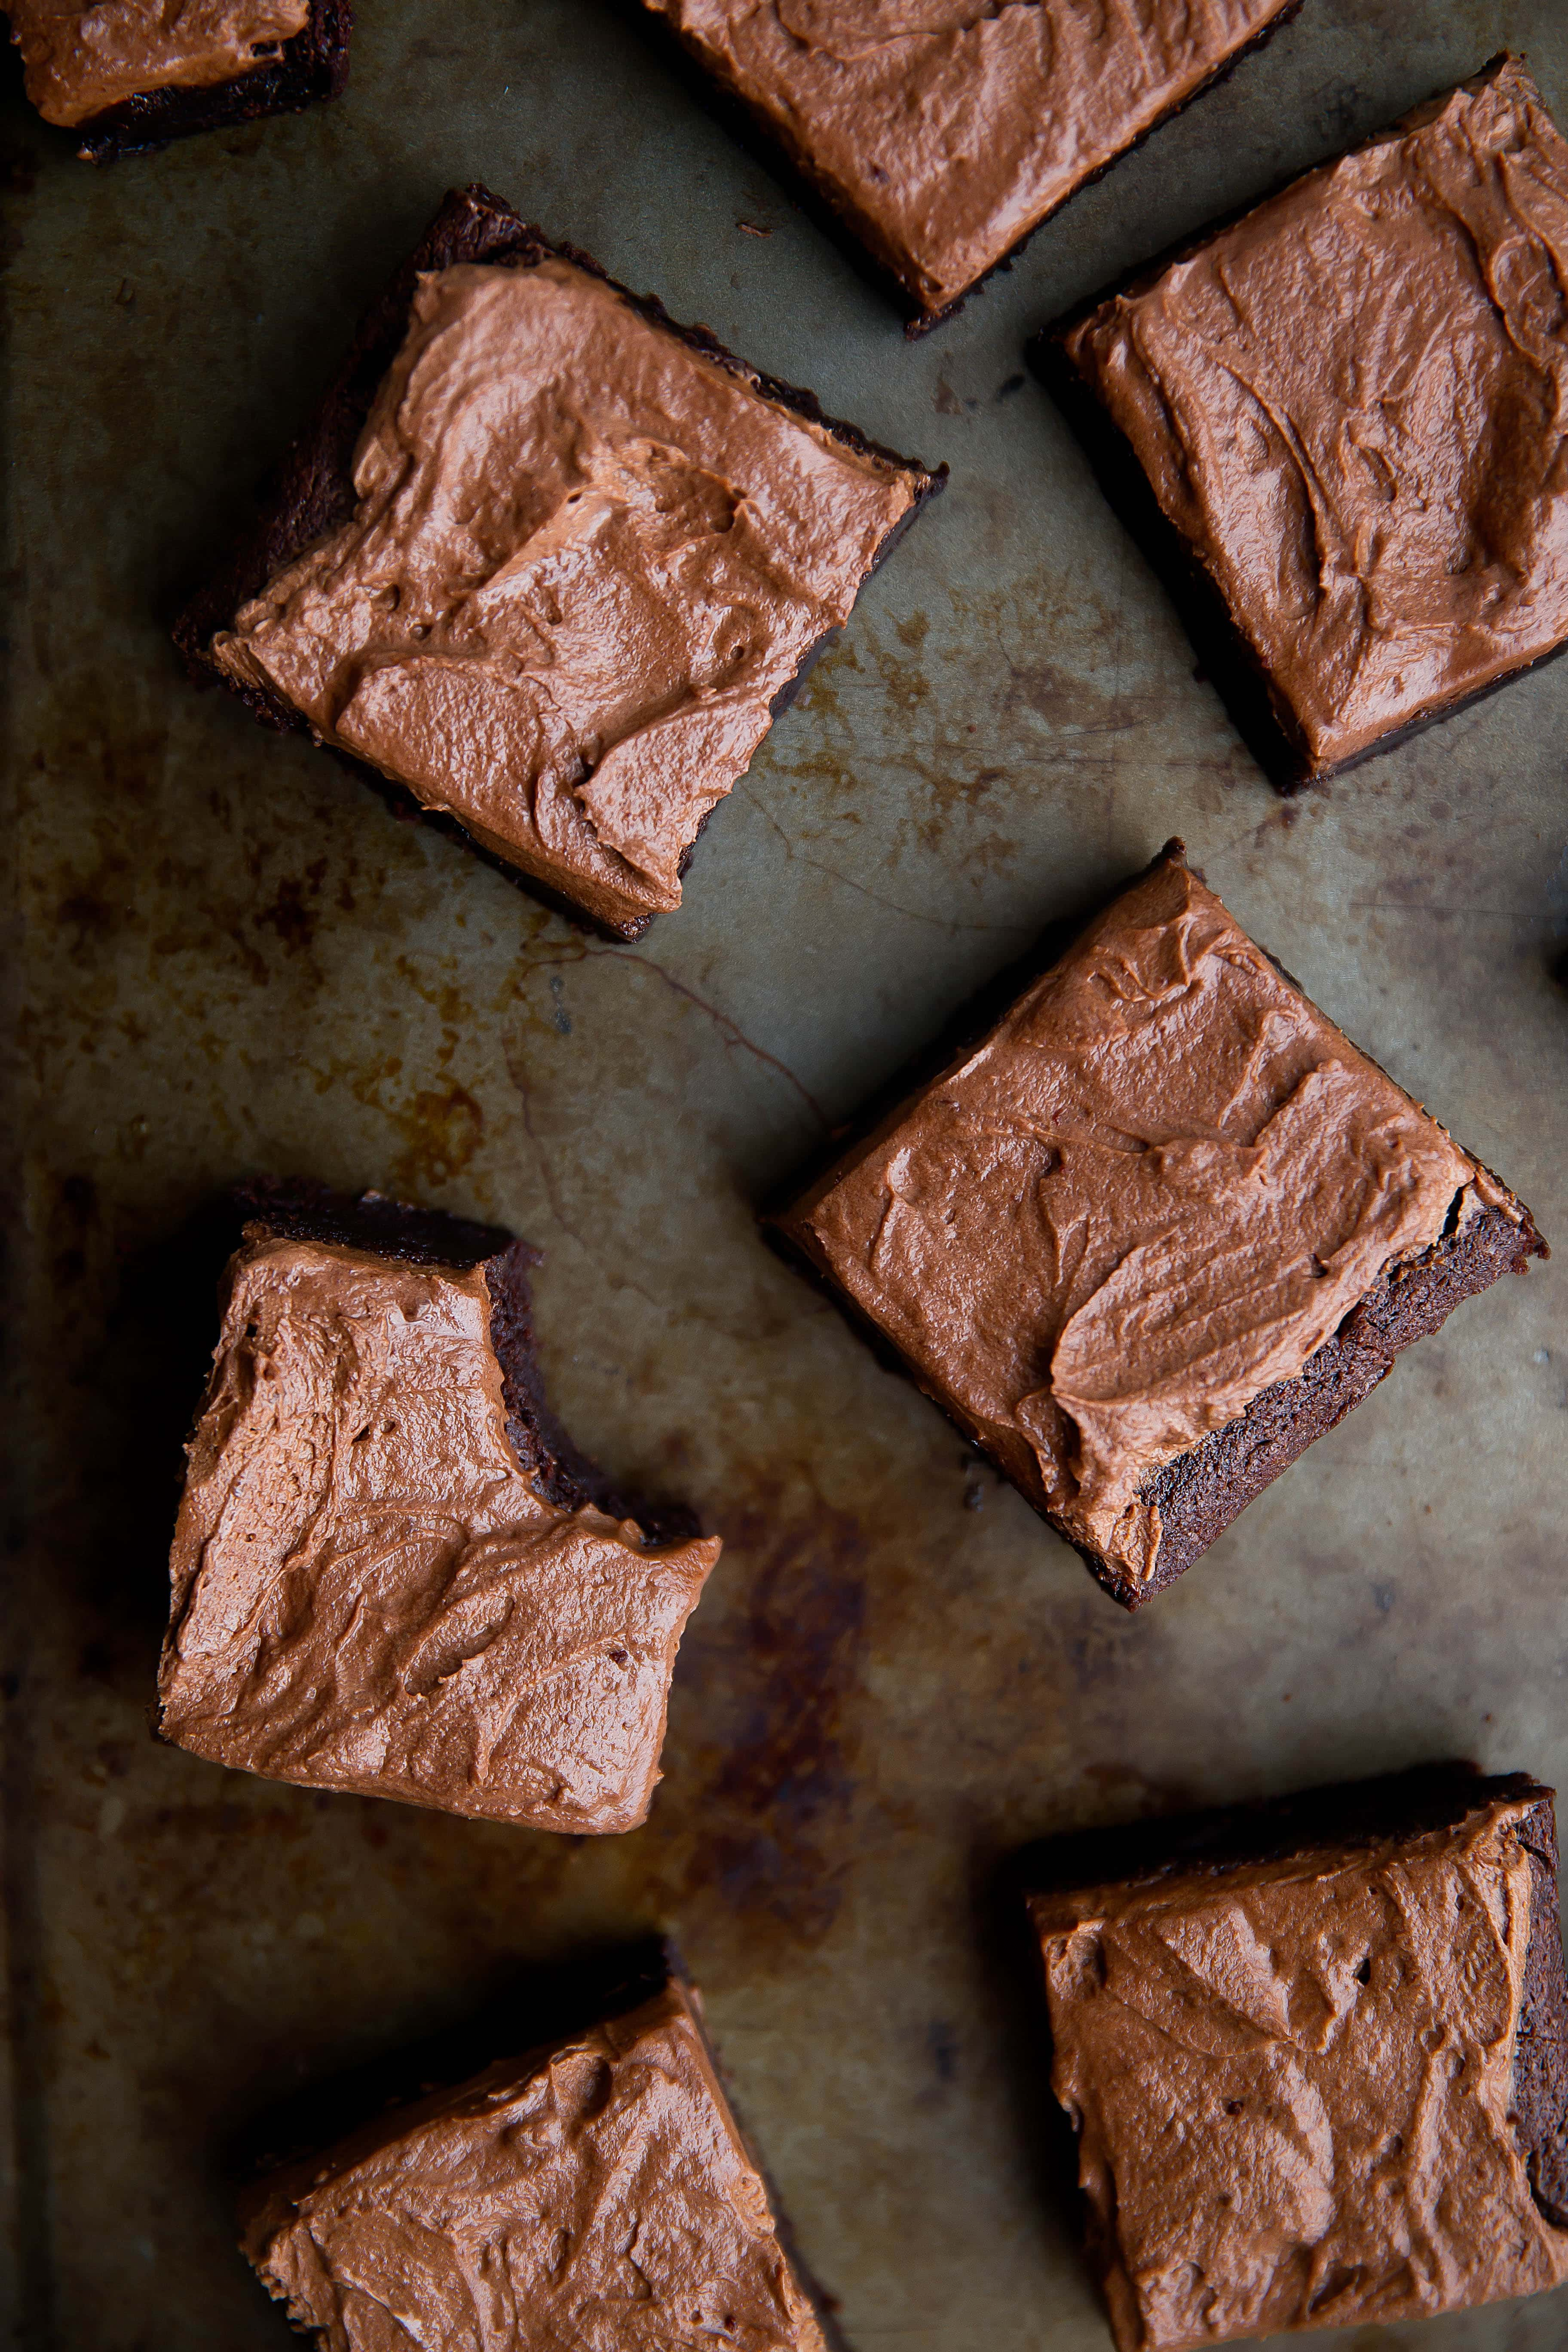 Two types of chocolate plus bourbon make these Double Chocolate Bourbon Brownies a smash hit. And topped with bourbon chocolate whipped cream, they're nearly irresistible!